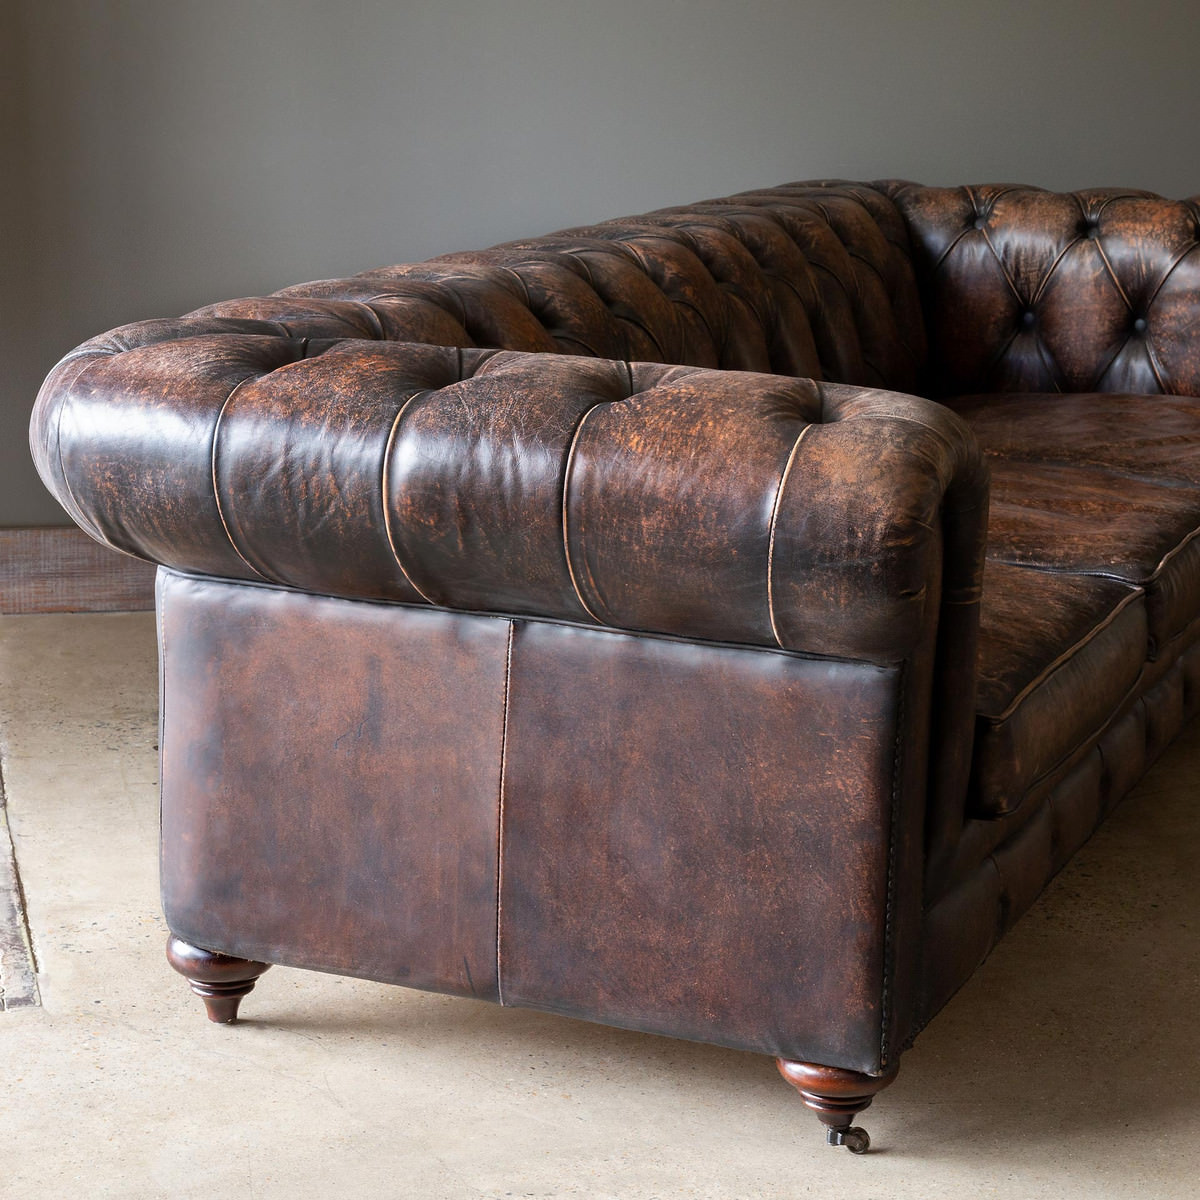 Aged Leather Chesterfield Sofa